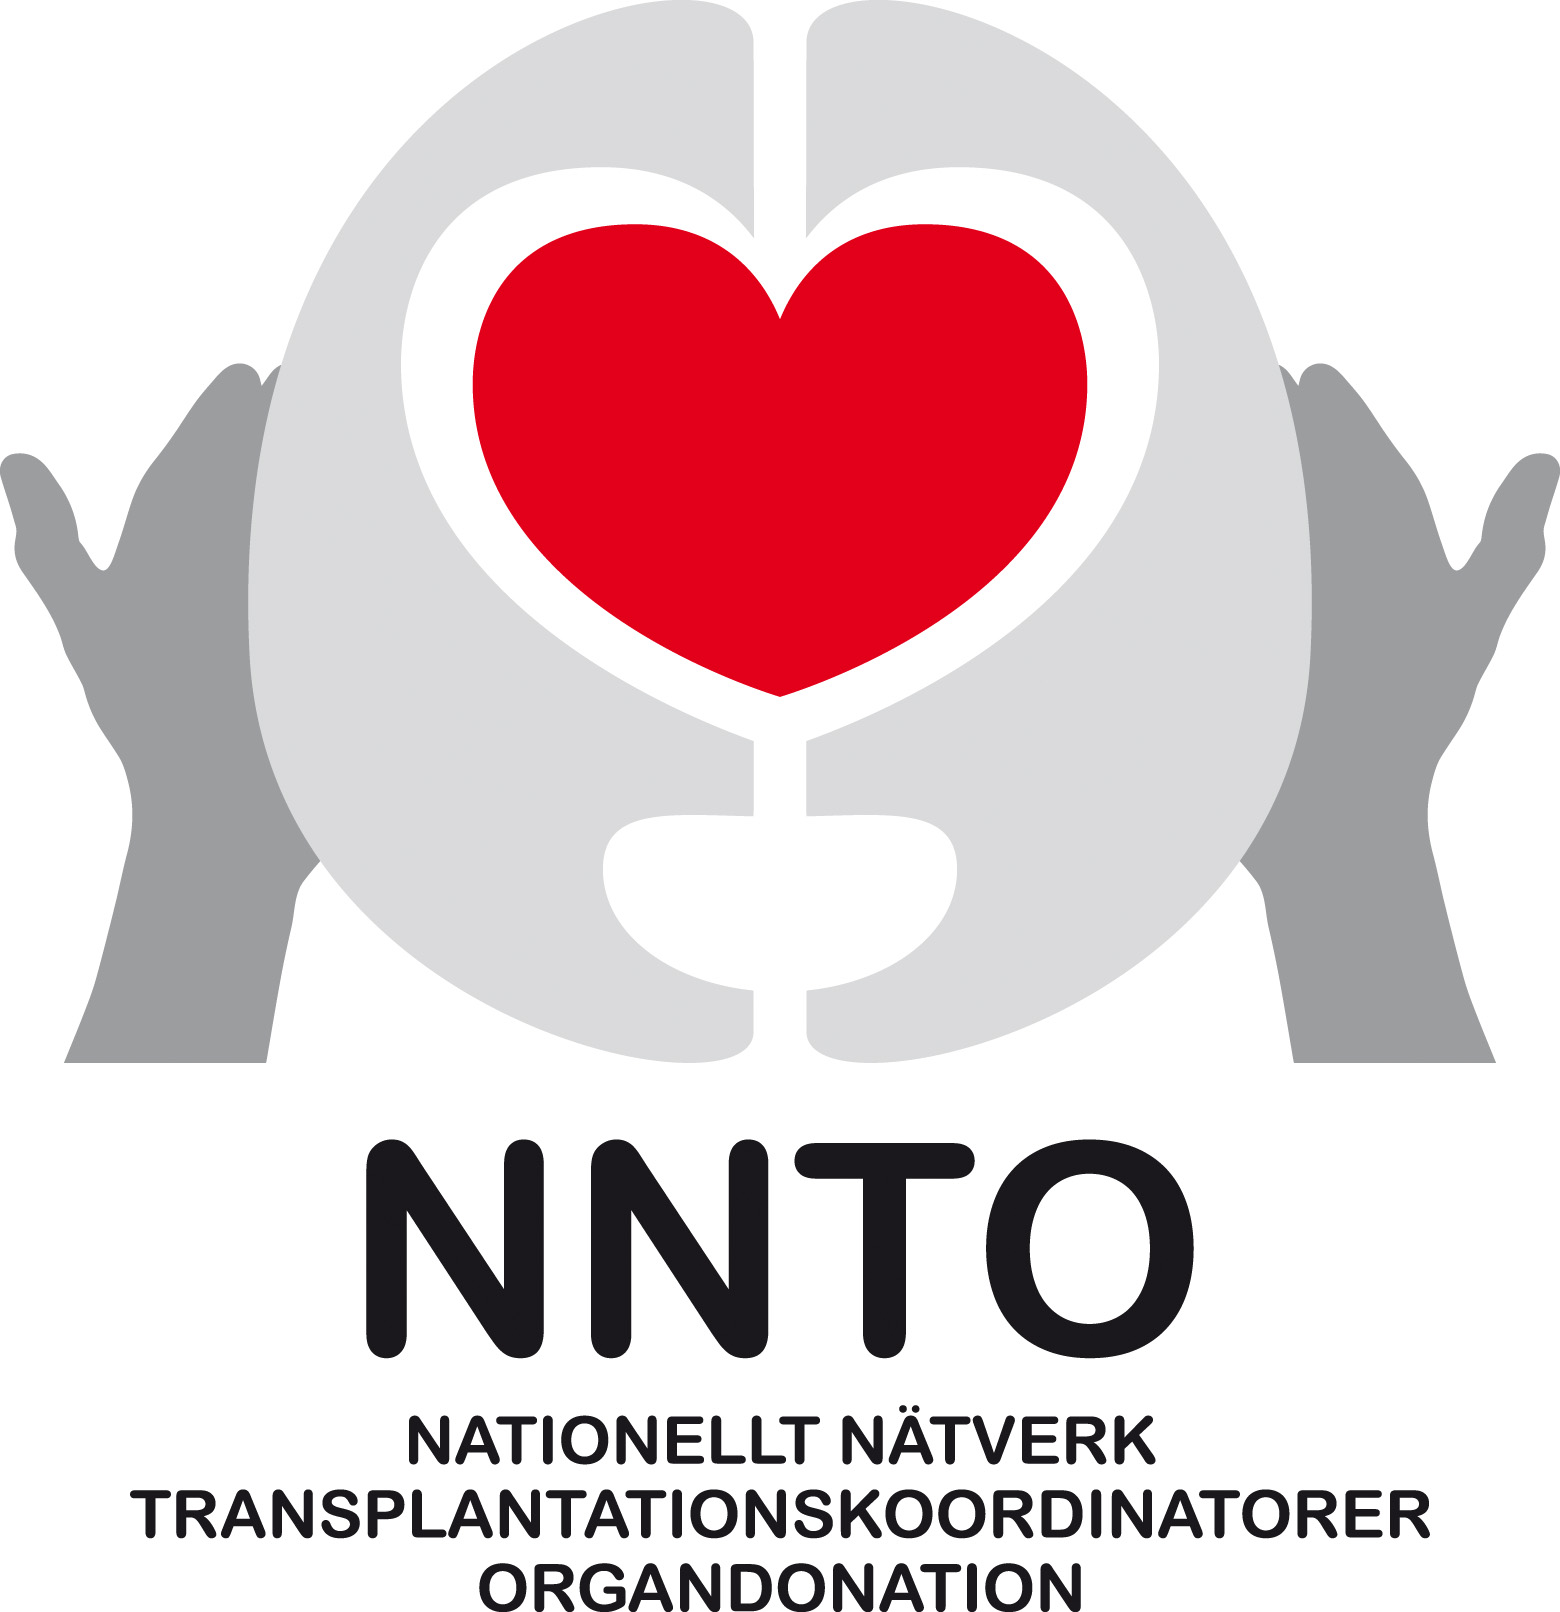 Nationellt nätverk transplantationsskoordinatorer organdonation